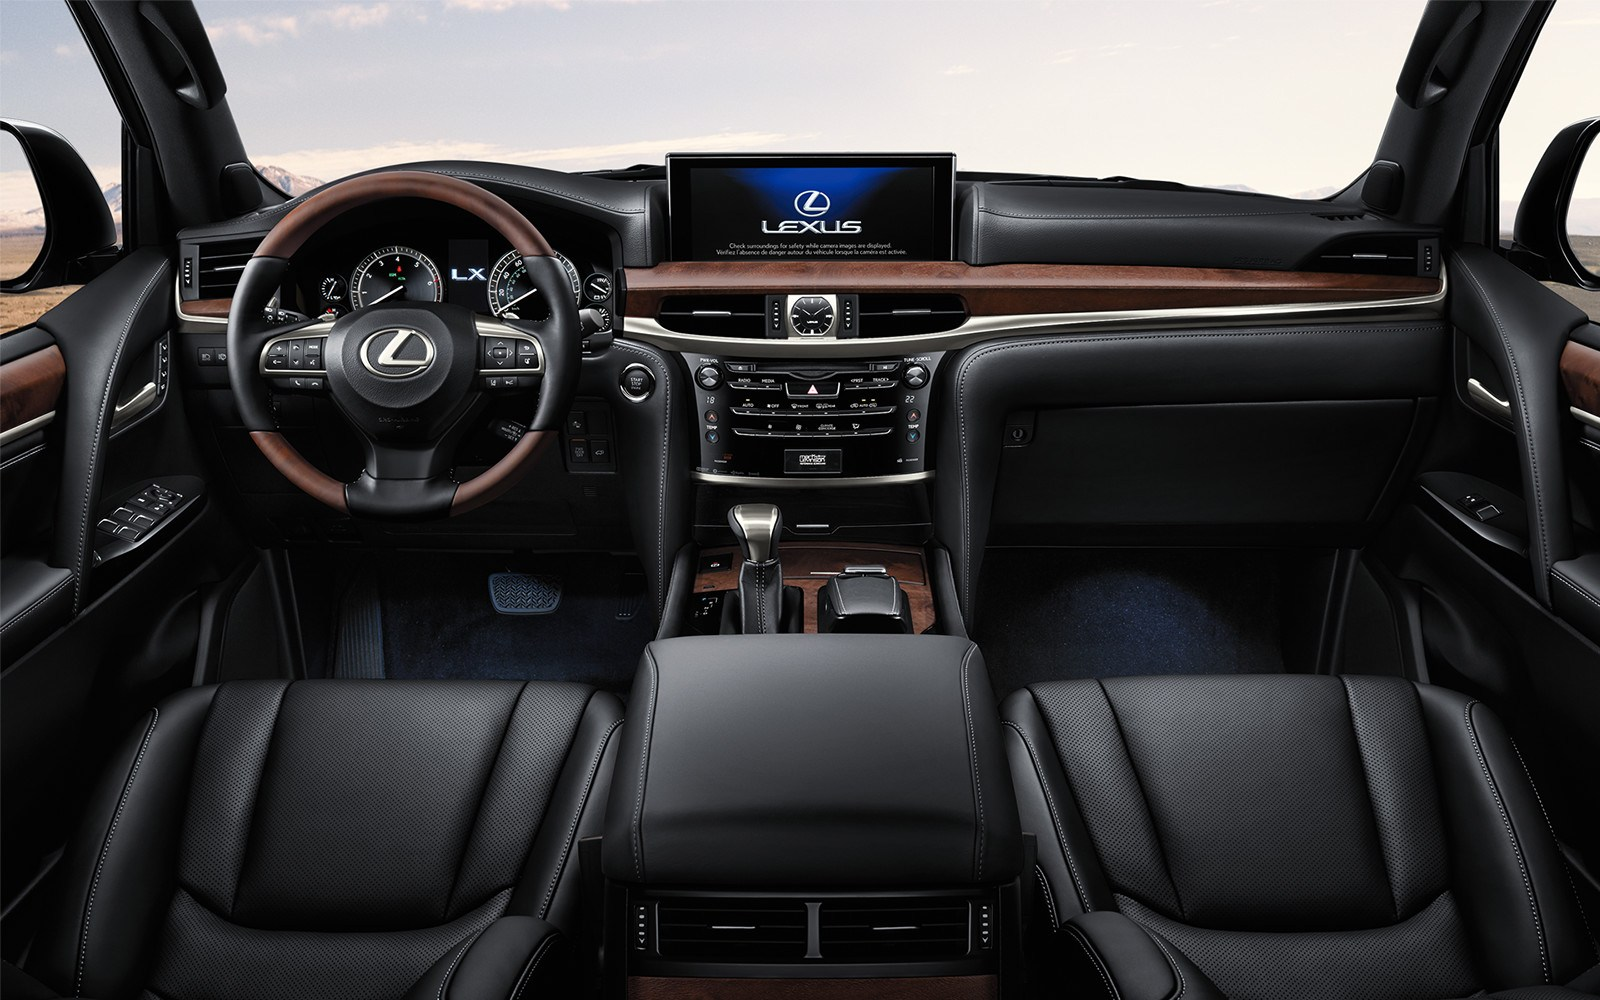 2019 Lexus LX Technology at Ken Shaw Lexus in Toronto